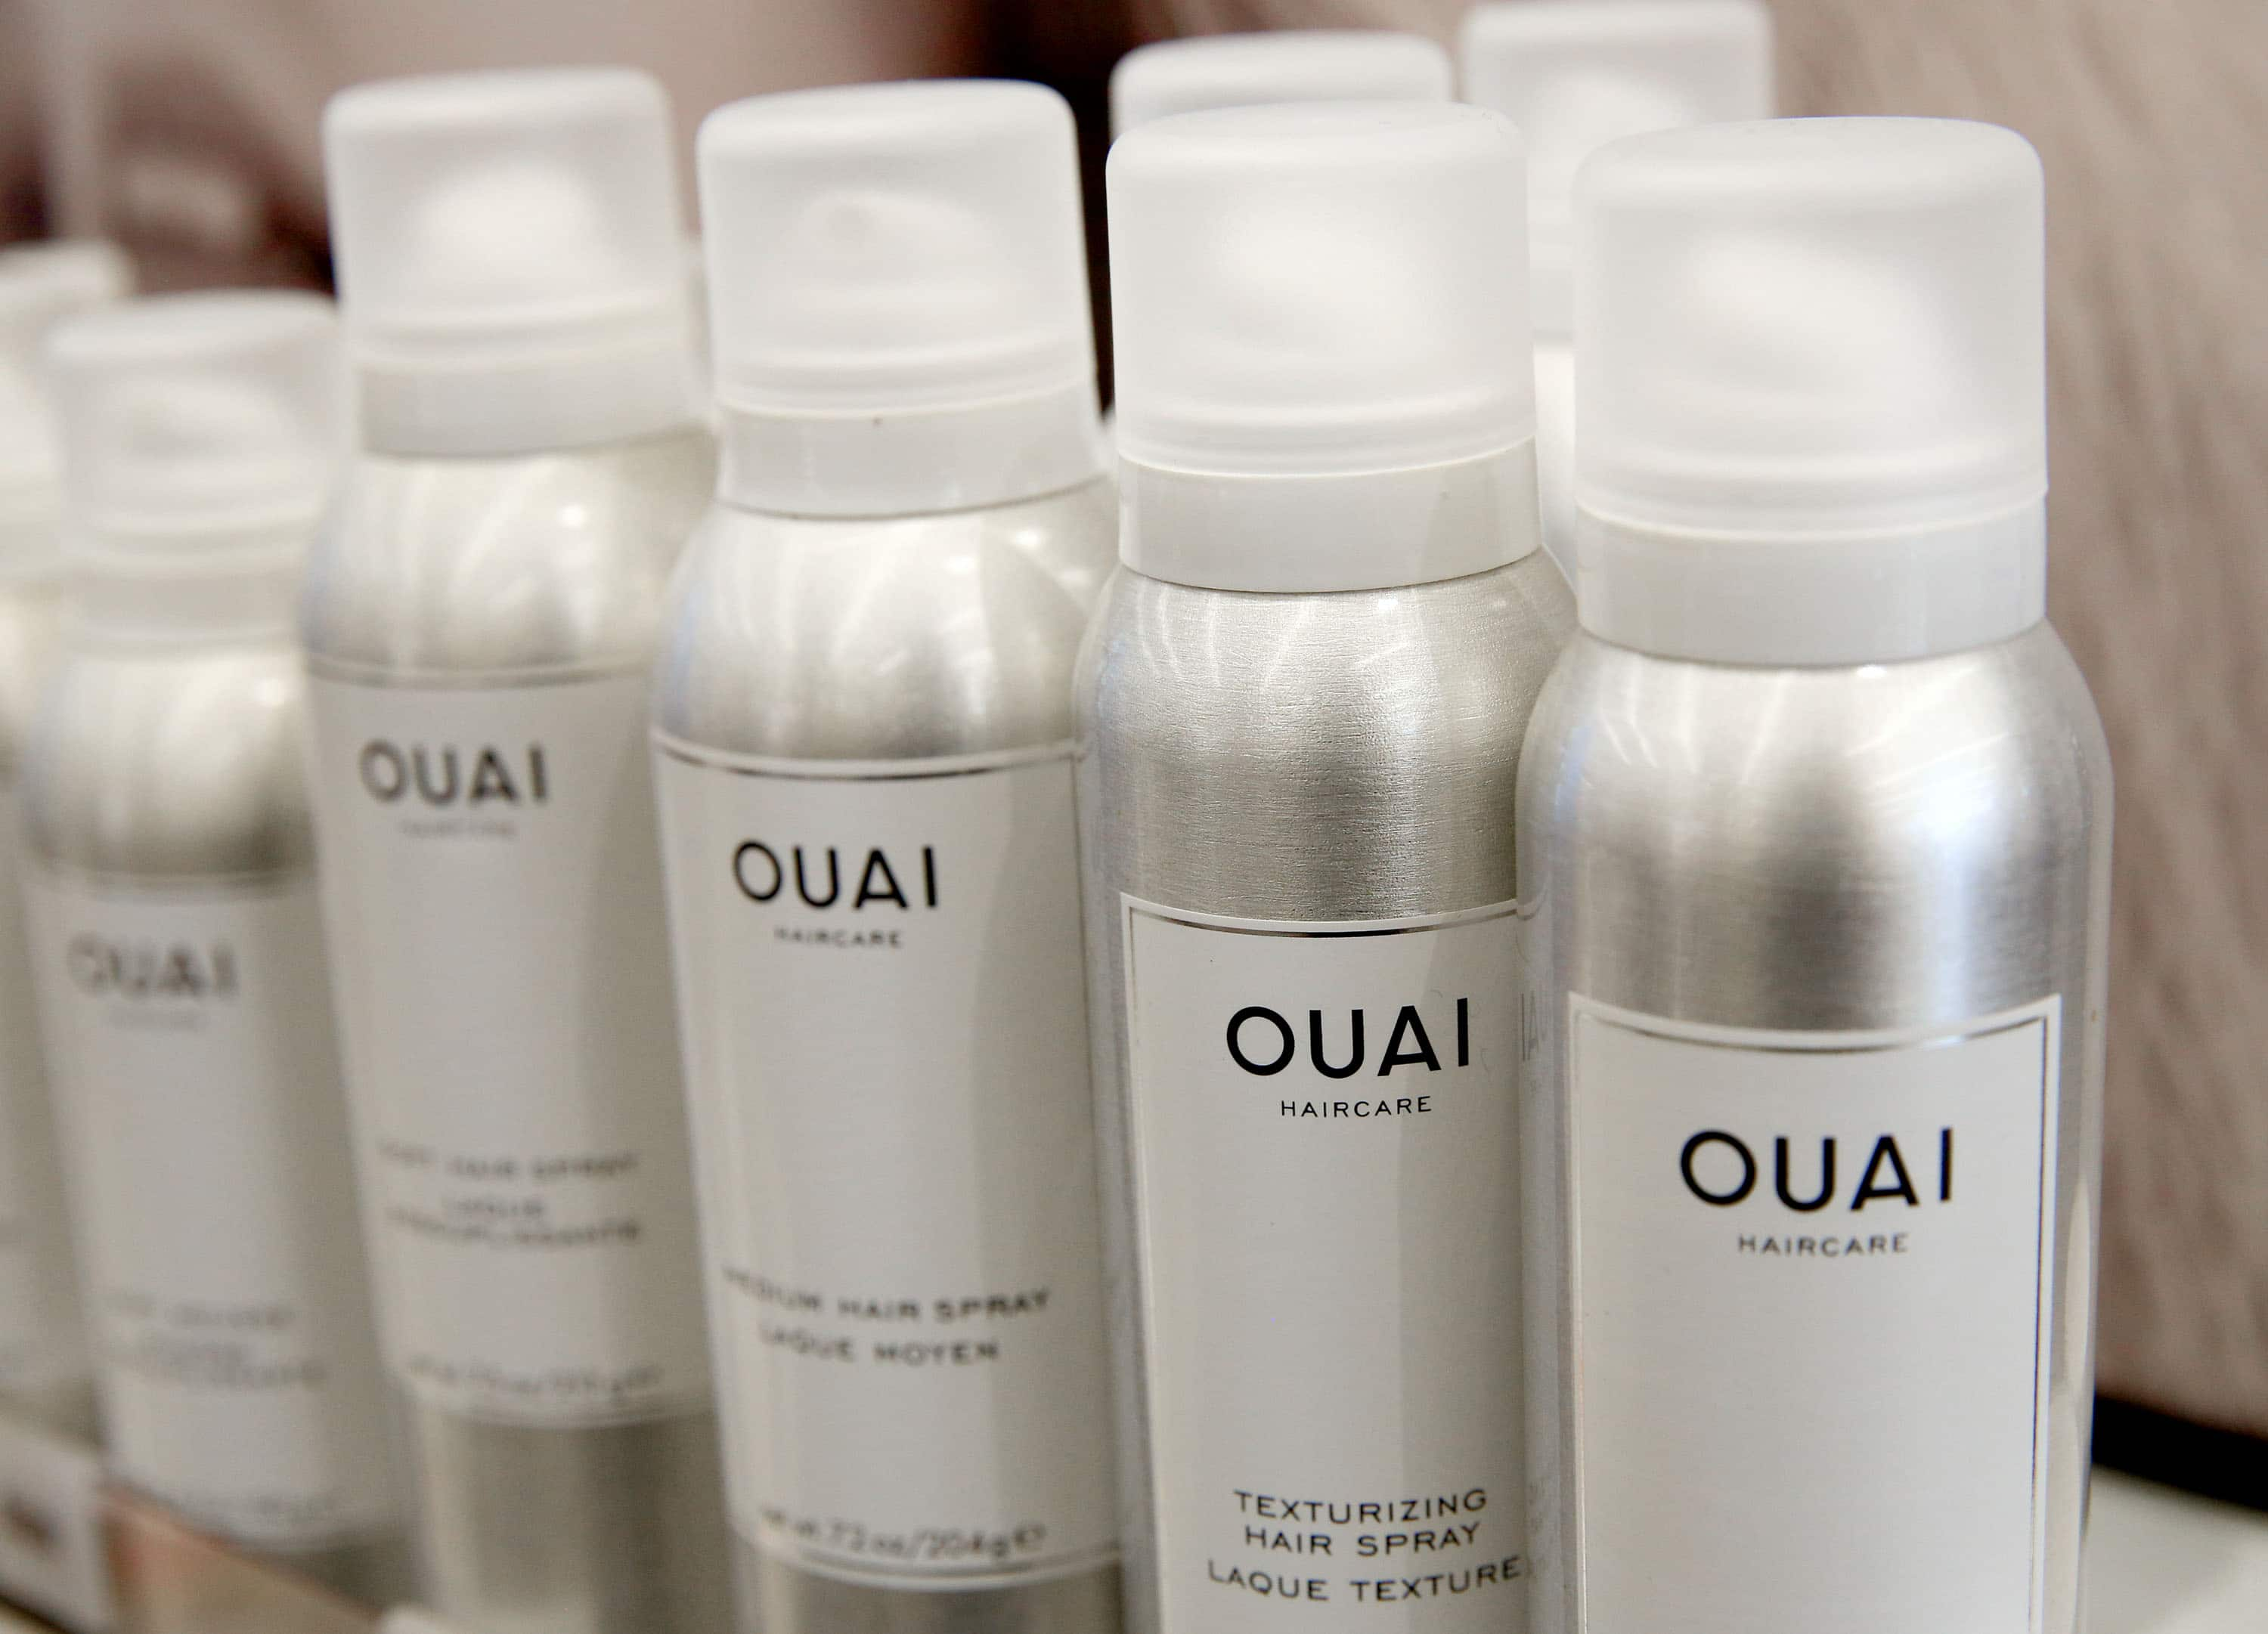 Ouai, the most loved haircare brand on Instagram, launches in India